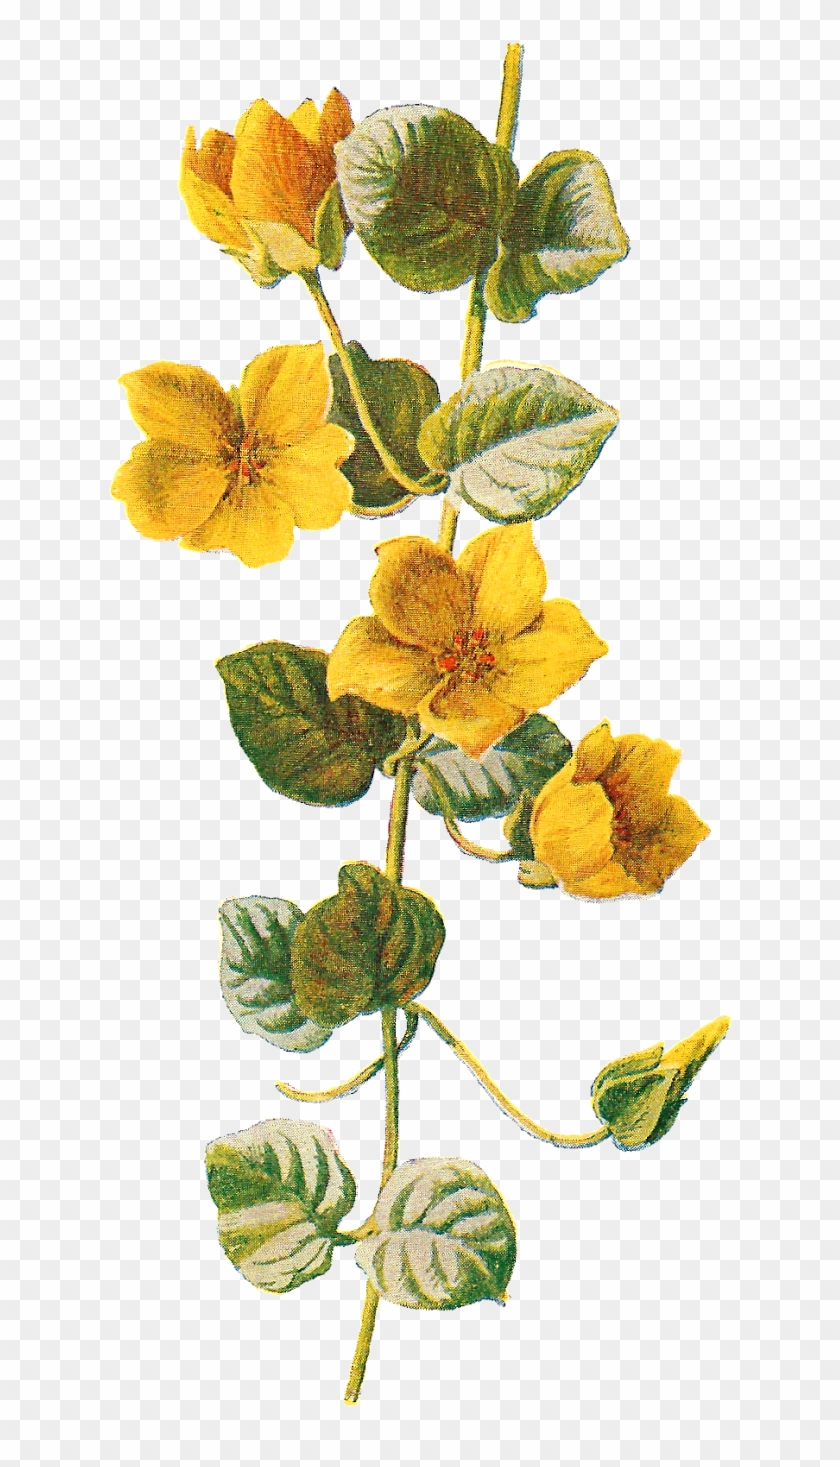 Wildflower Clipart Different Flower - Botanical Flowers Png #290185